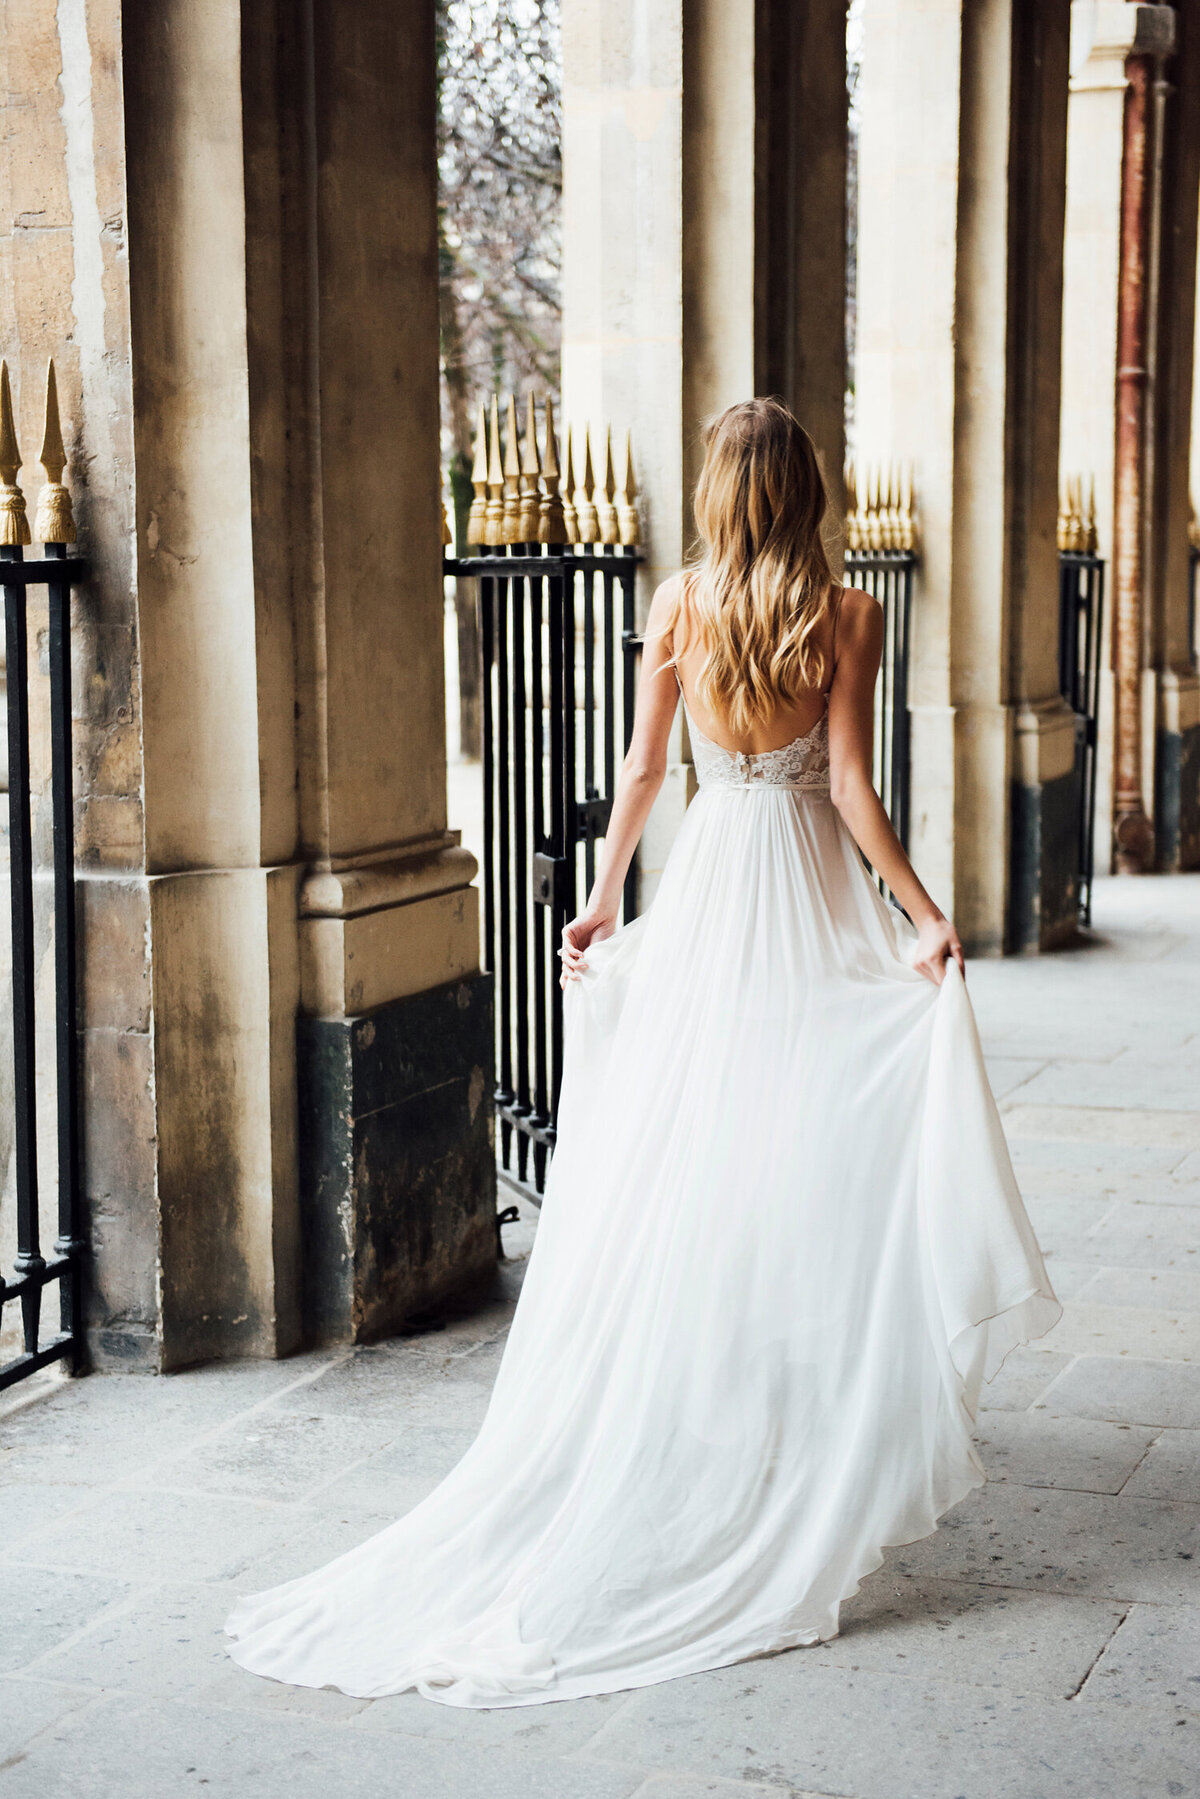 Katie Mitchell, Monique Lhuillier Bridal Paris France Wedding Trine Juel Hair and makeup 18